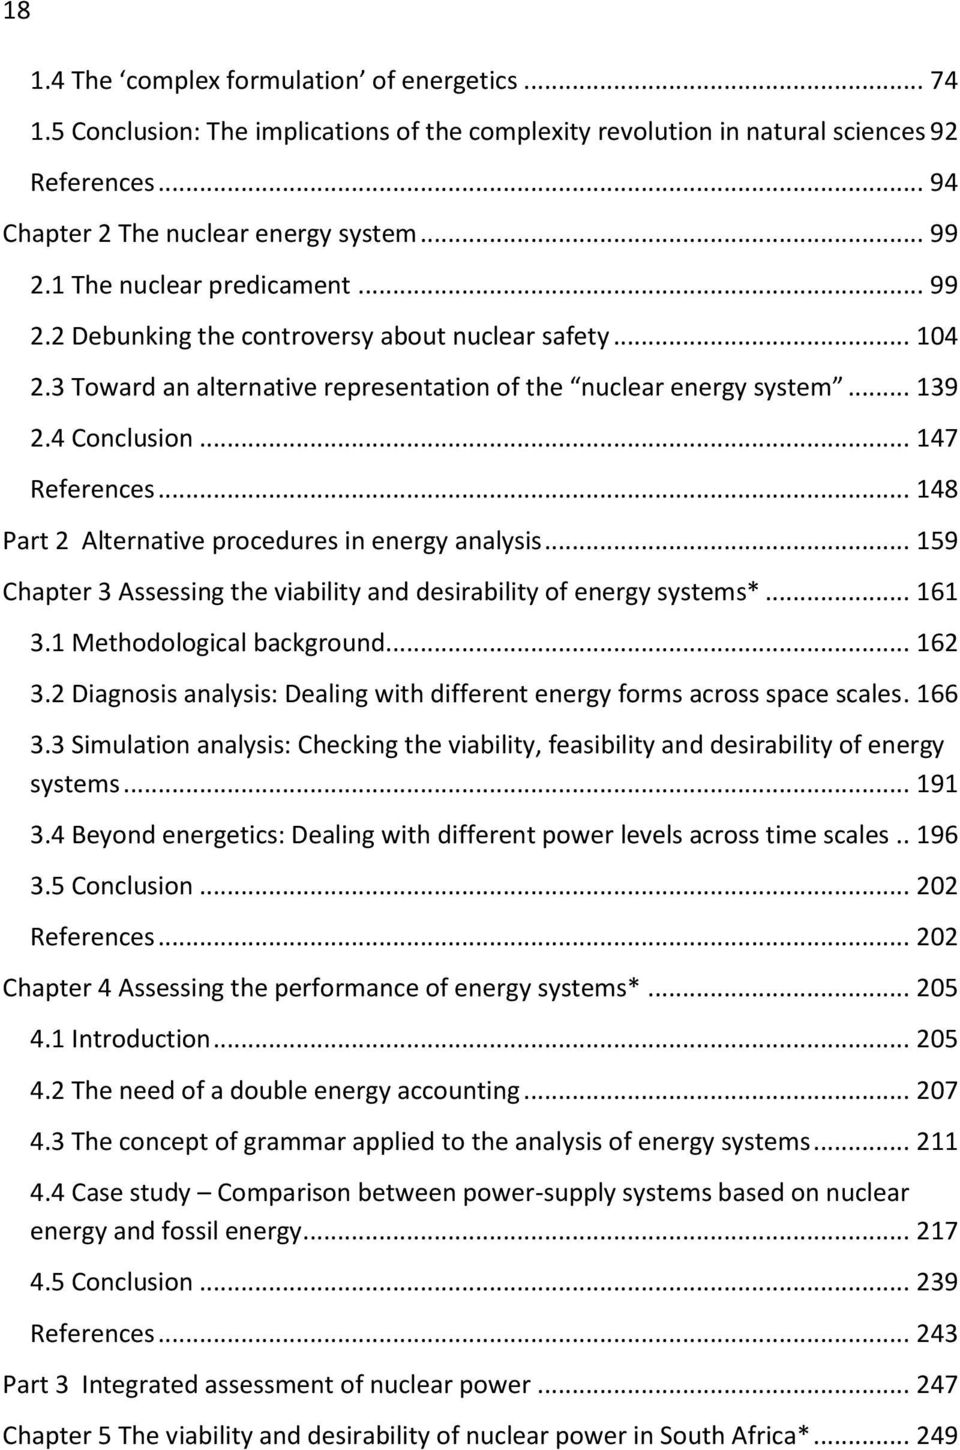 .. 148 Part 2 Alternative procedures in energy analysis... 159 Chapter 3 Assessing the viability and desirability of energy systems*... 161 3.1 Methodological background... 162 3.